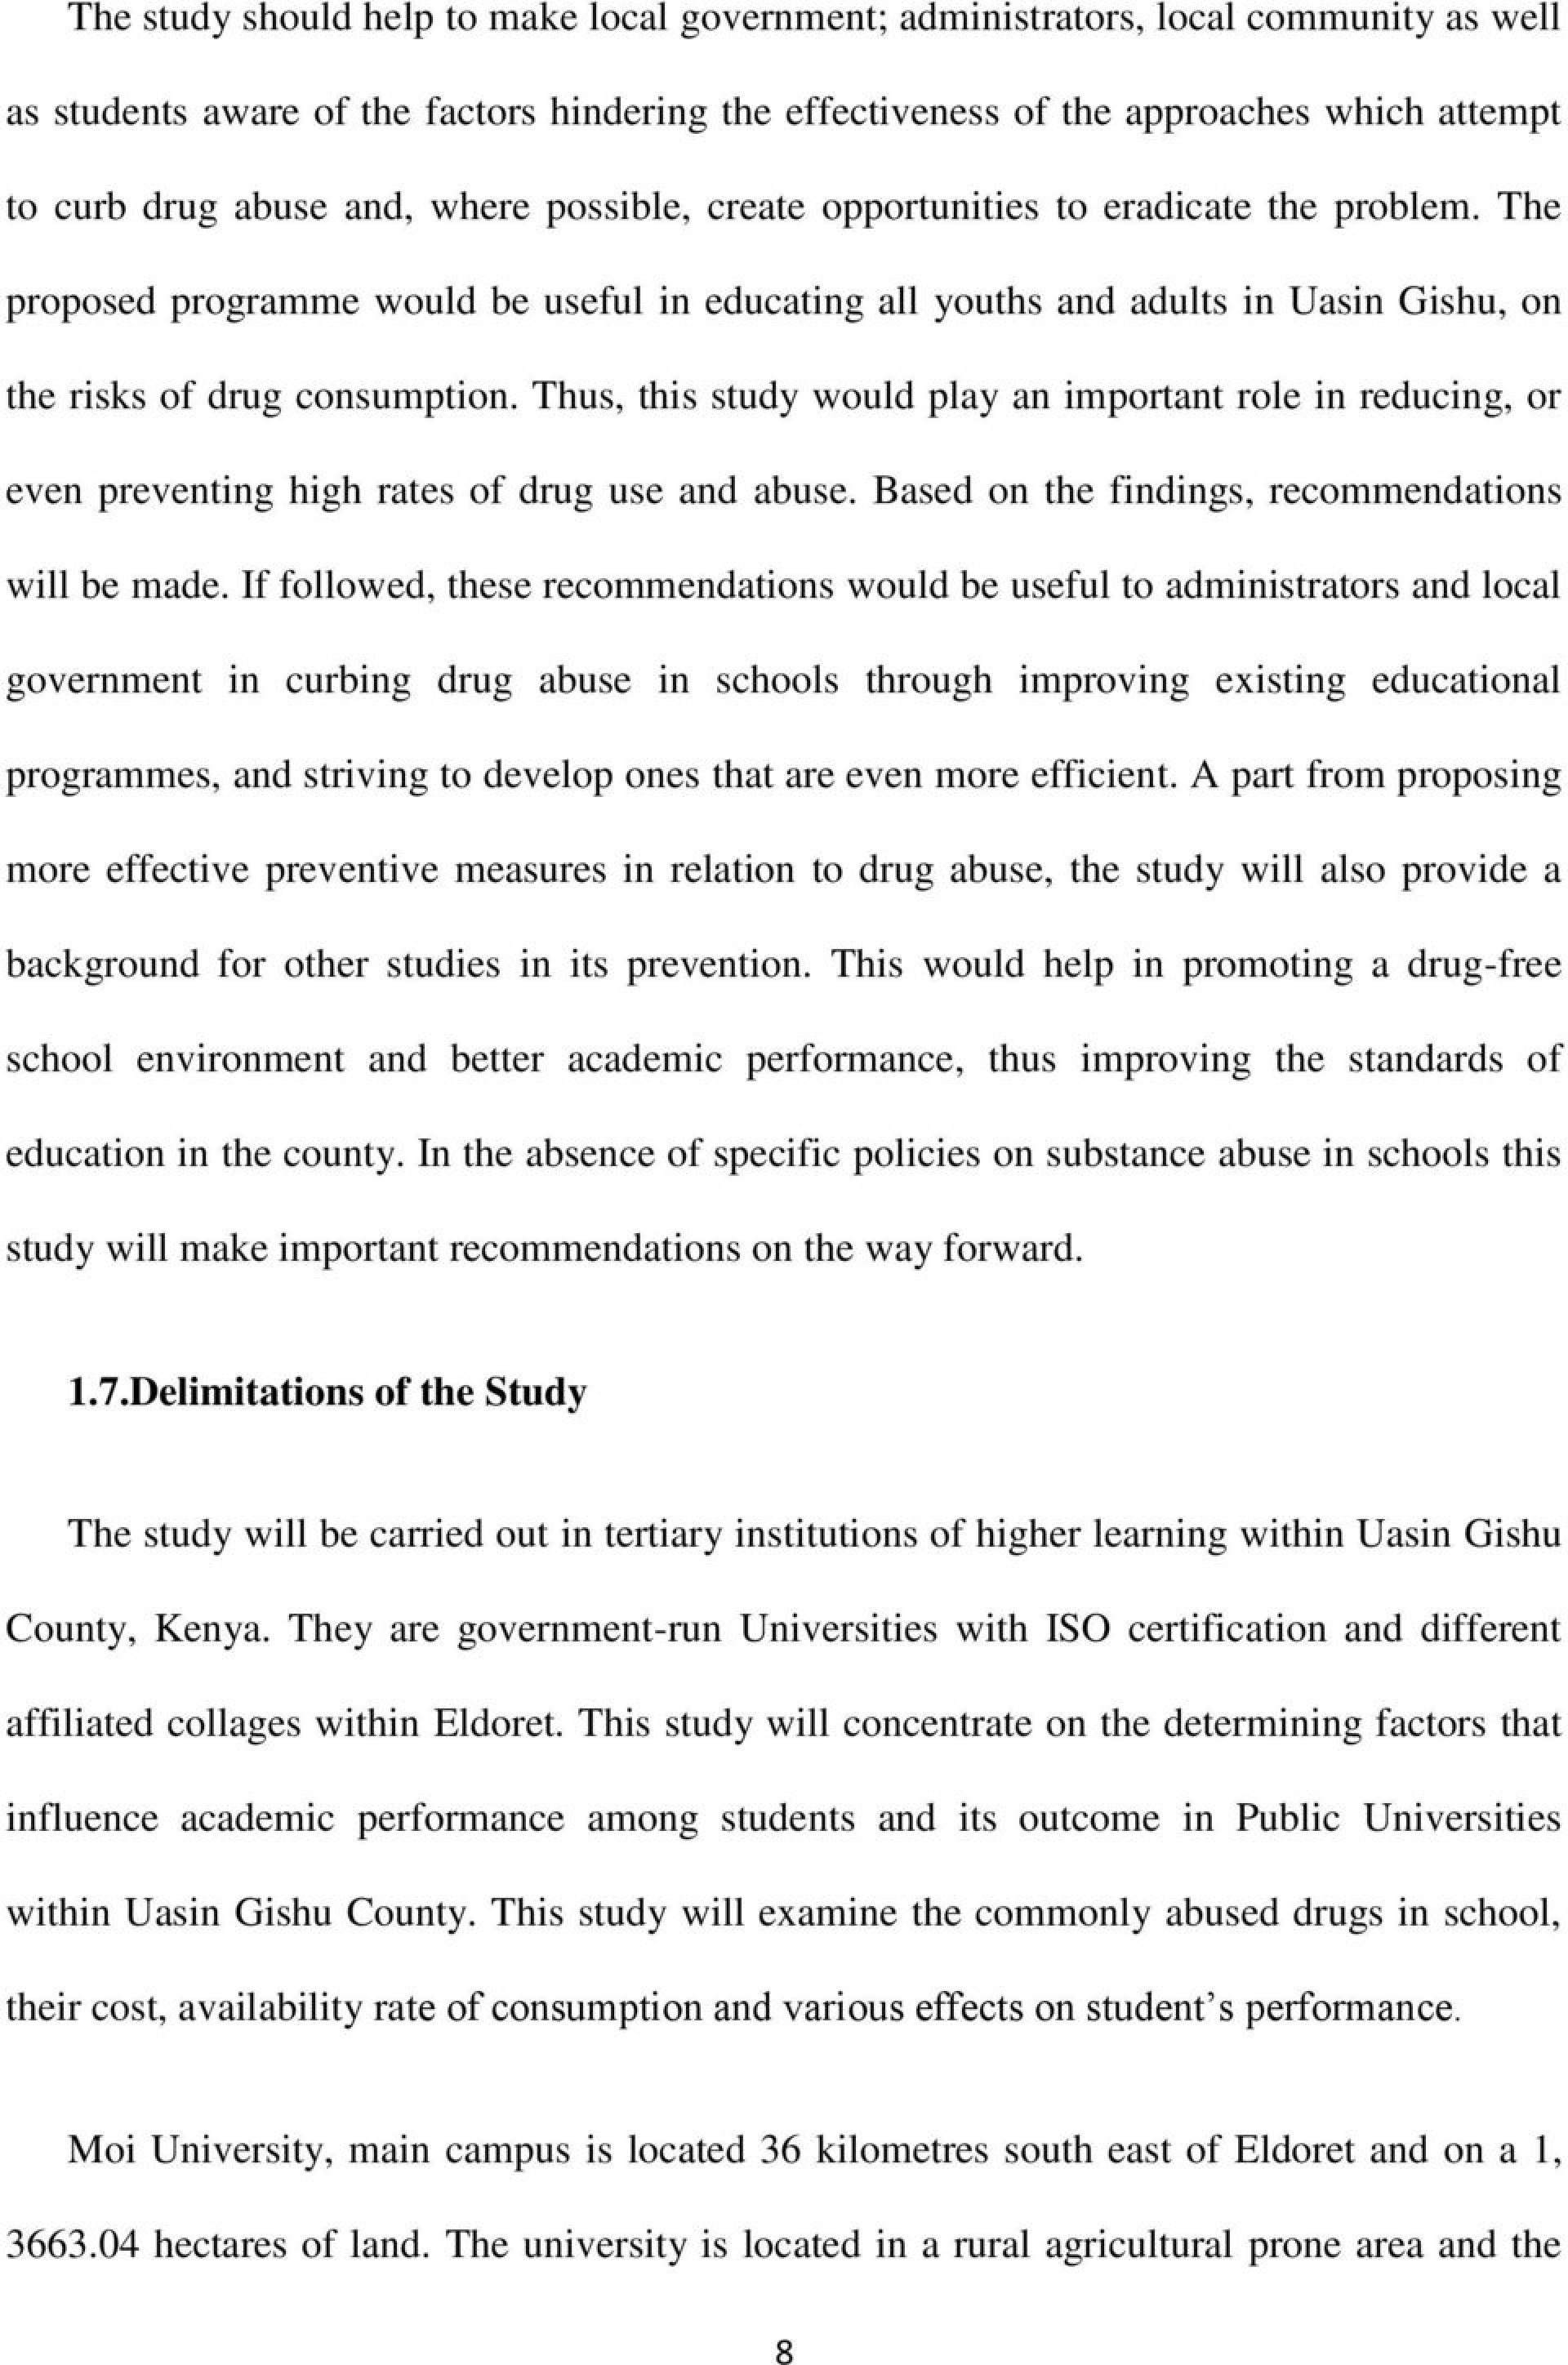 007 Drugs Essays Drug Addiction Essay Topics Abuse College Pa In Students Example Stirring About Short Tagalog Persuasive Illegal Argumentative 1920